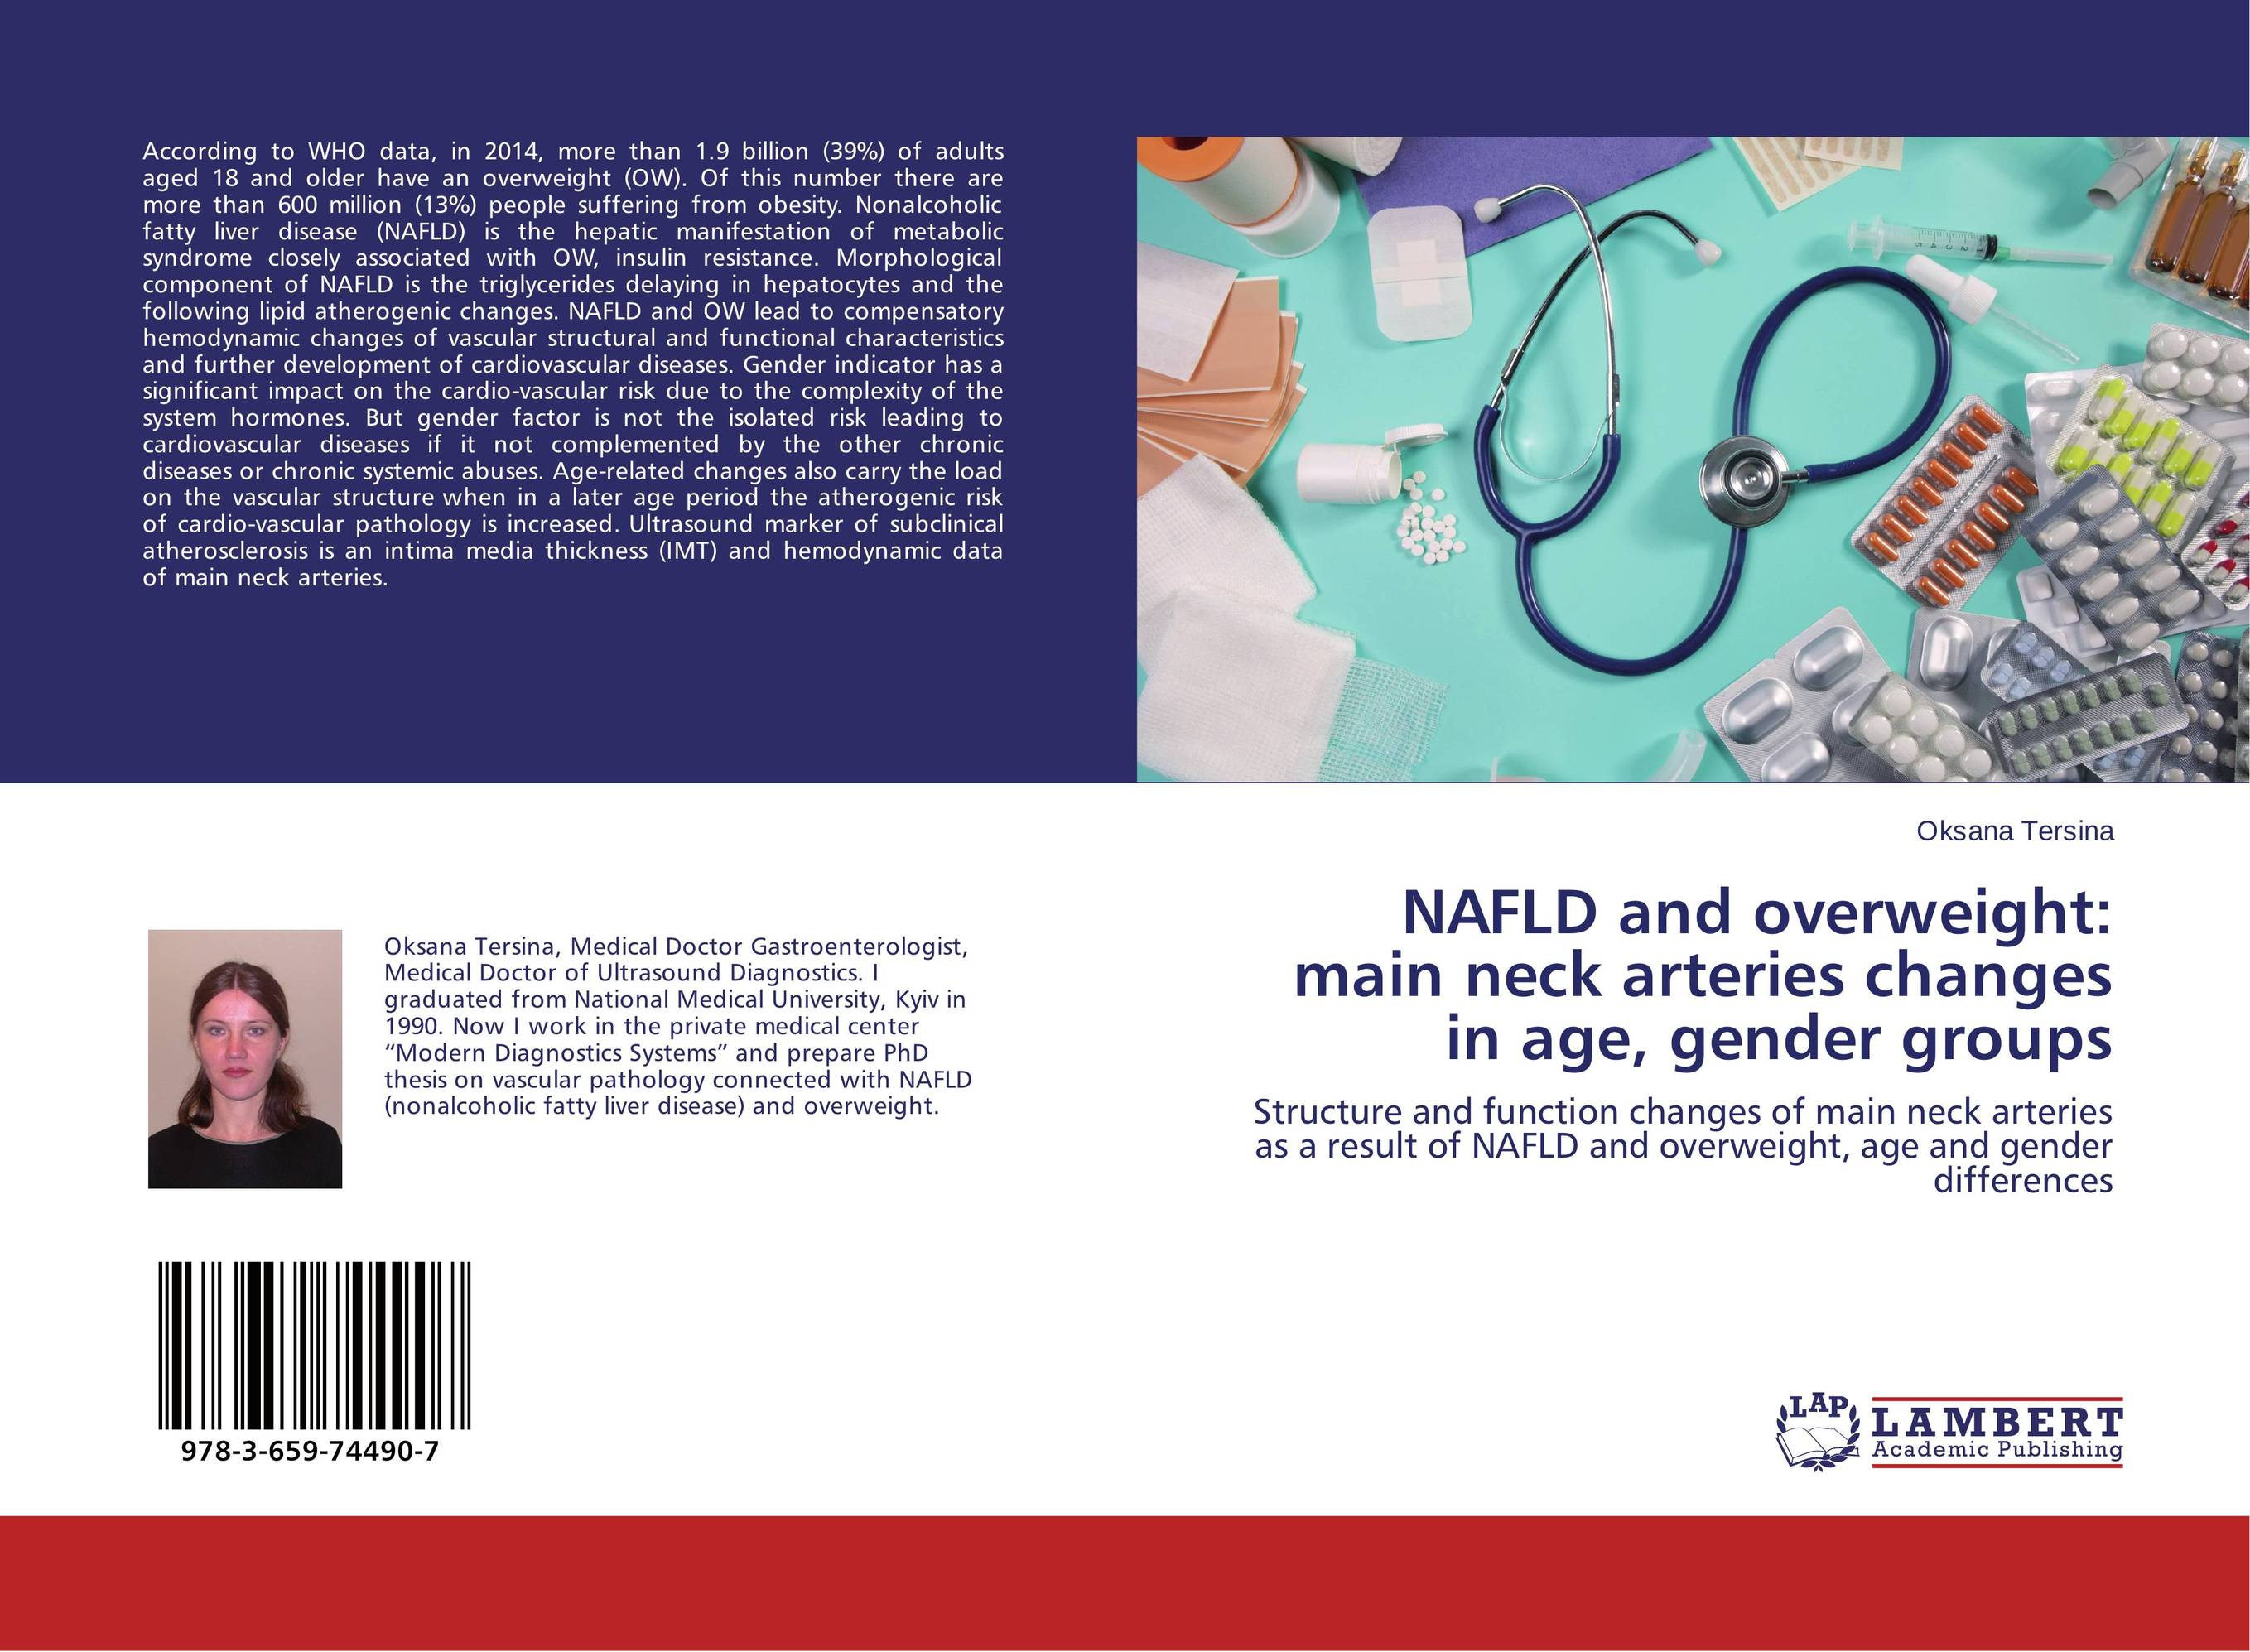 NAFLD and overweight: main neck arteries changes in age, gender groups cardiovascular changes and unconjugated hyperbilirubinemia in neonates